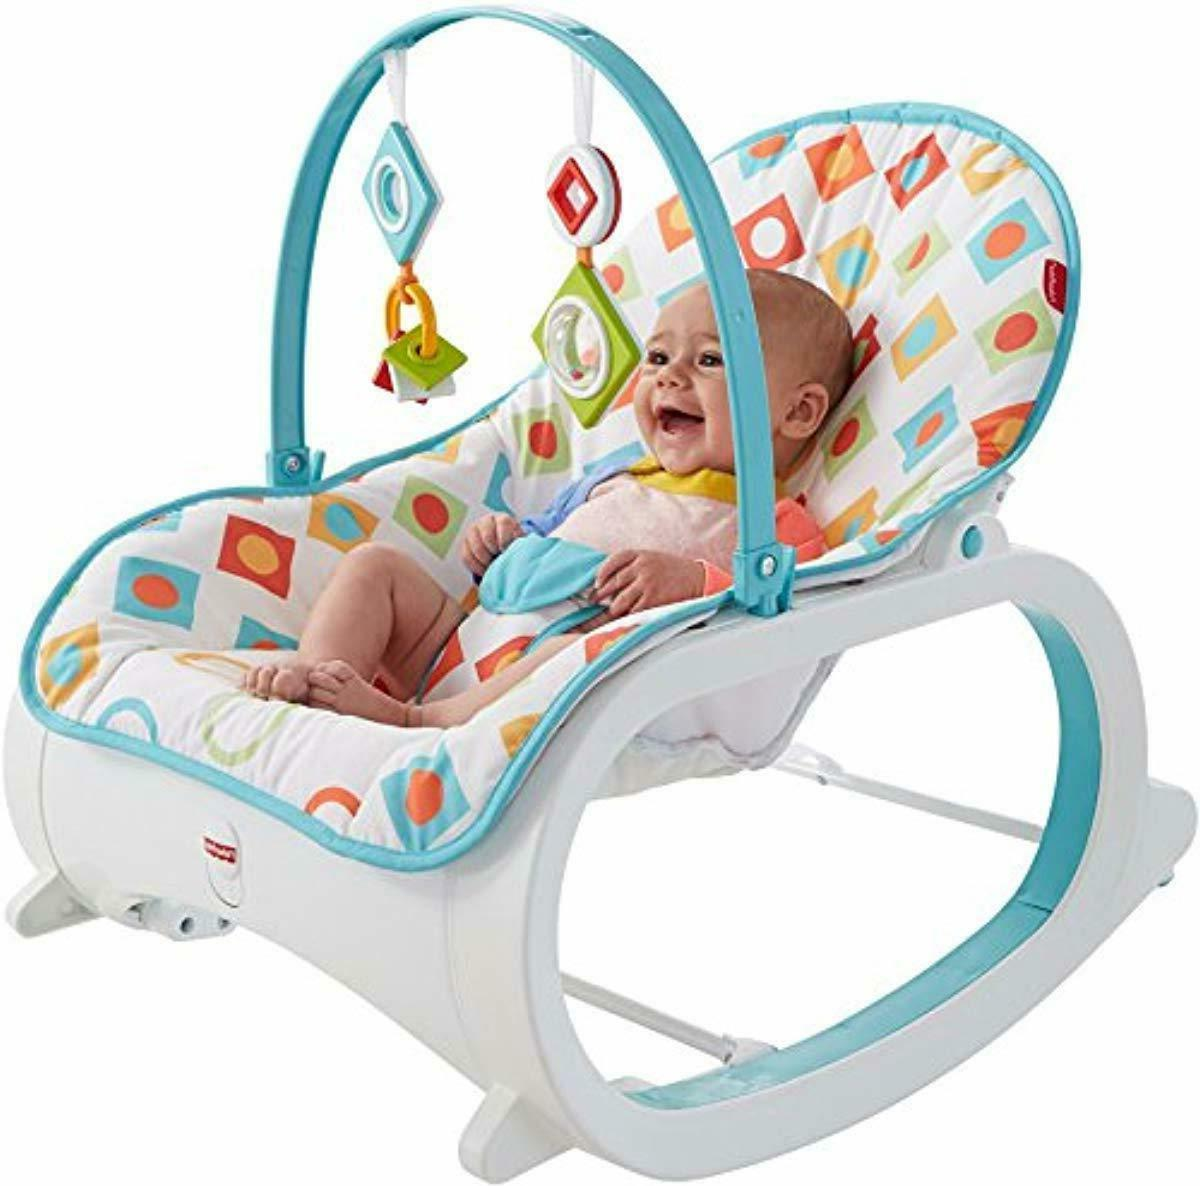 Baby Chair Newborn Toddler